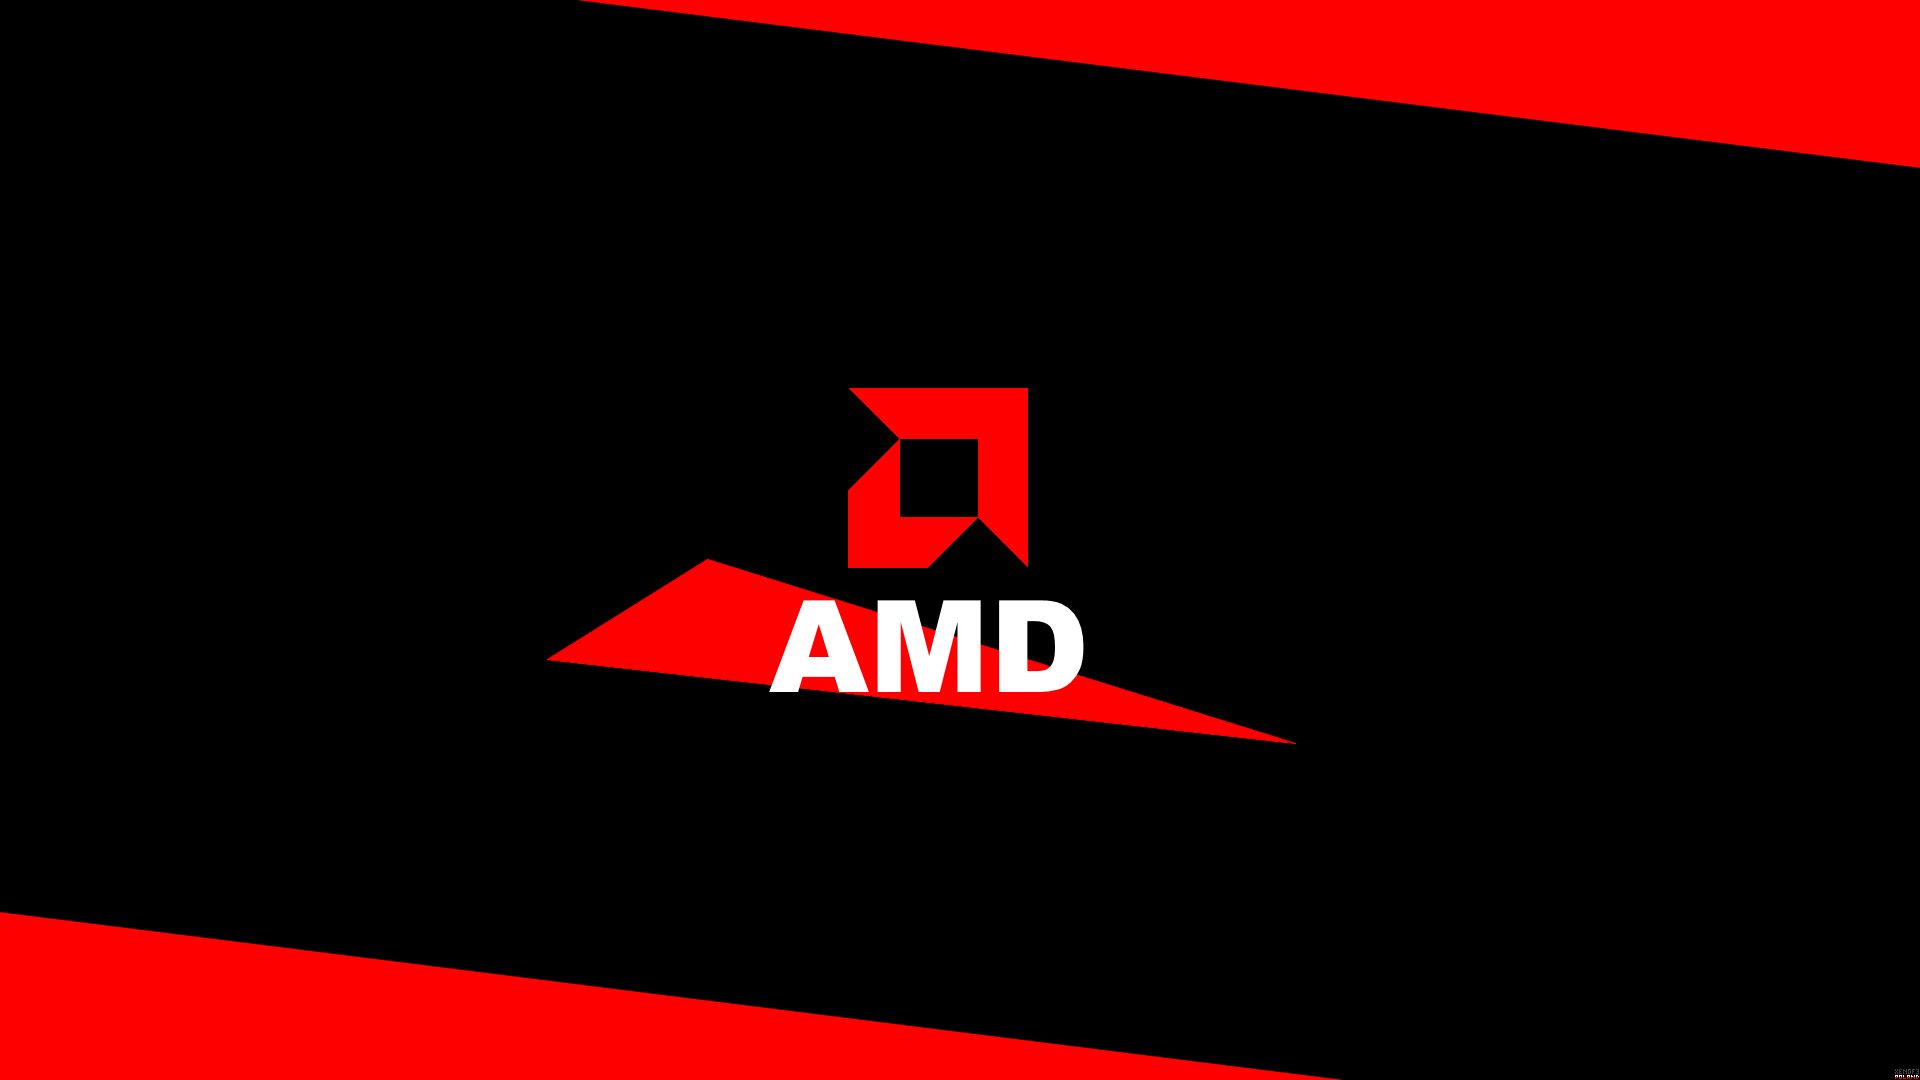 Amd wallpaper HD [1920x1080